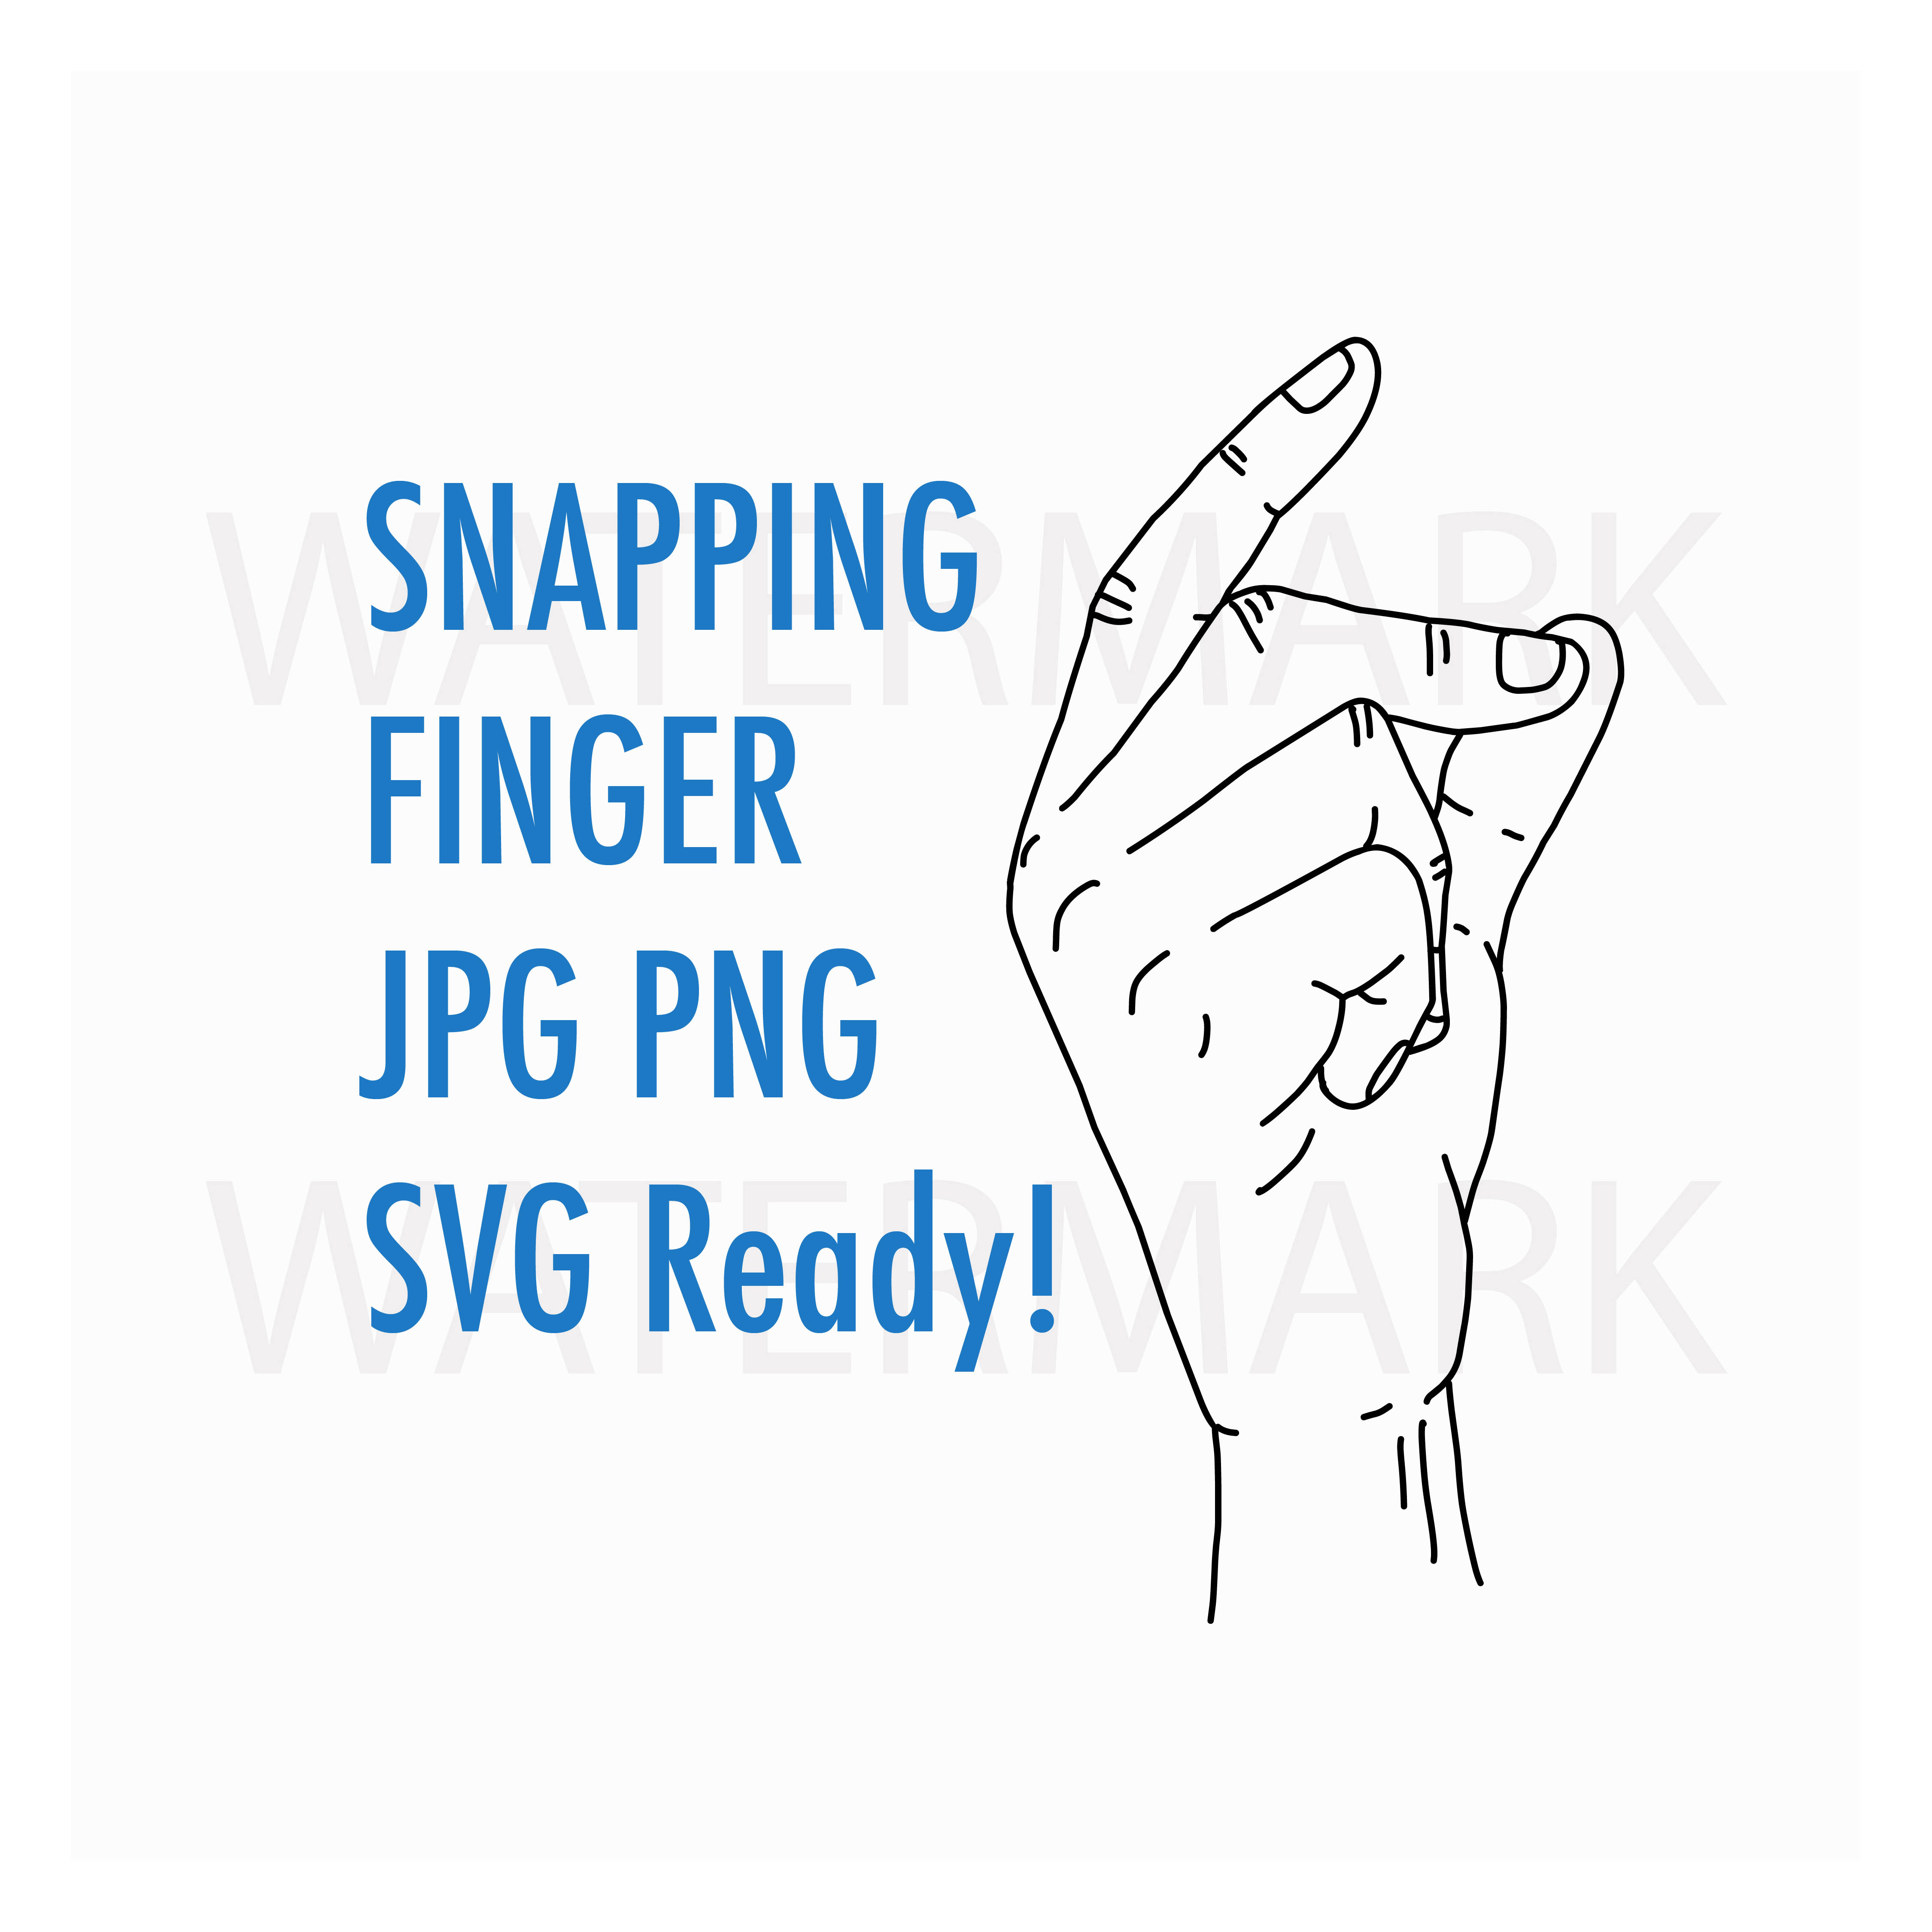 Snapping finger along with the song - like Elvis - SVG/JPG/PNG Hand Drawing example image 1